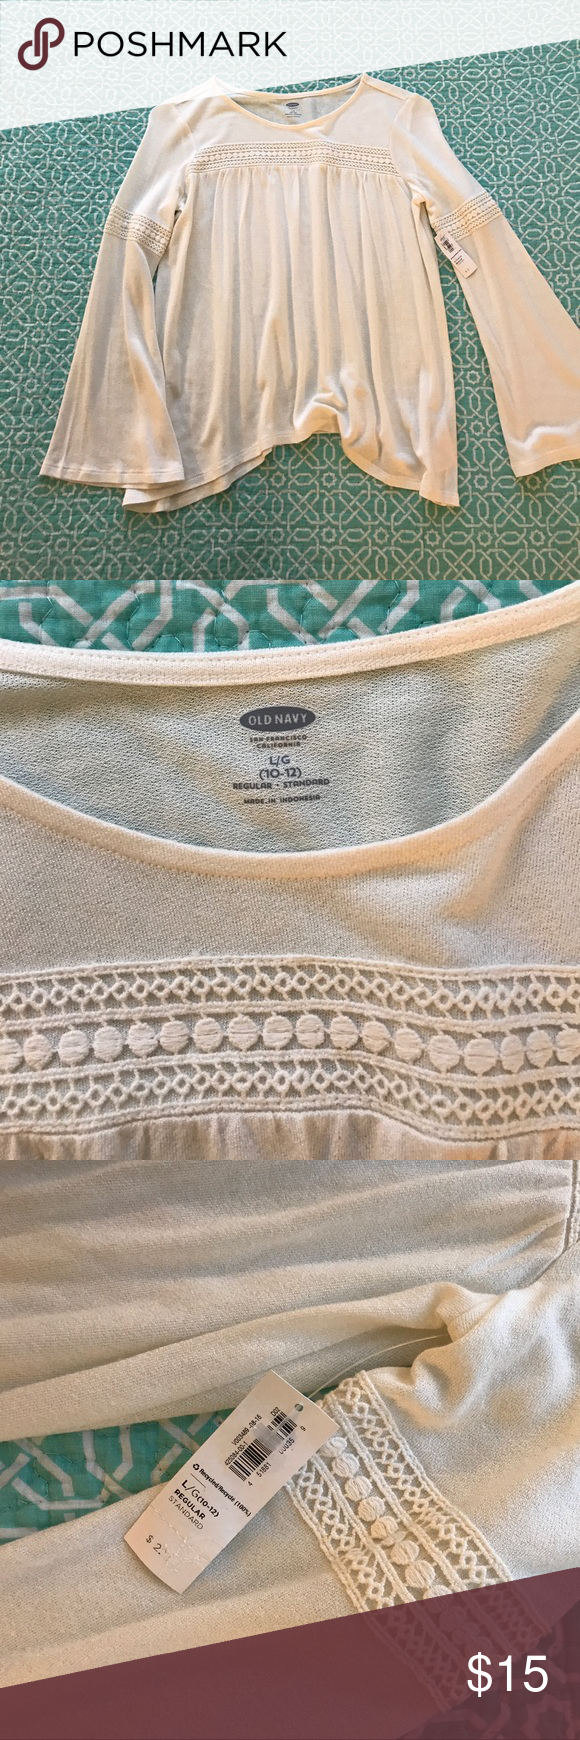 Float bell sleeve shirt with crochet detail Old navy bell sleeve top with crochet around the sleeves and across the top. Brand new with tag. Children's size L would fit XS or S adult. Old Navy Tops Blouses